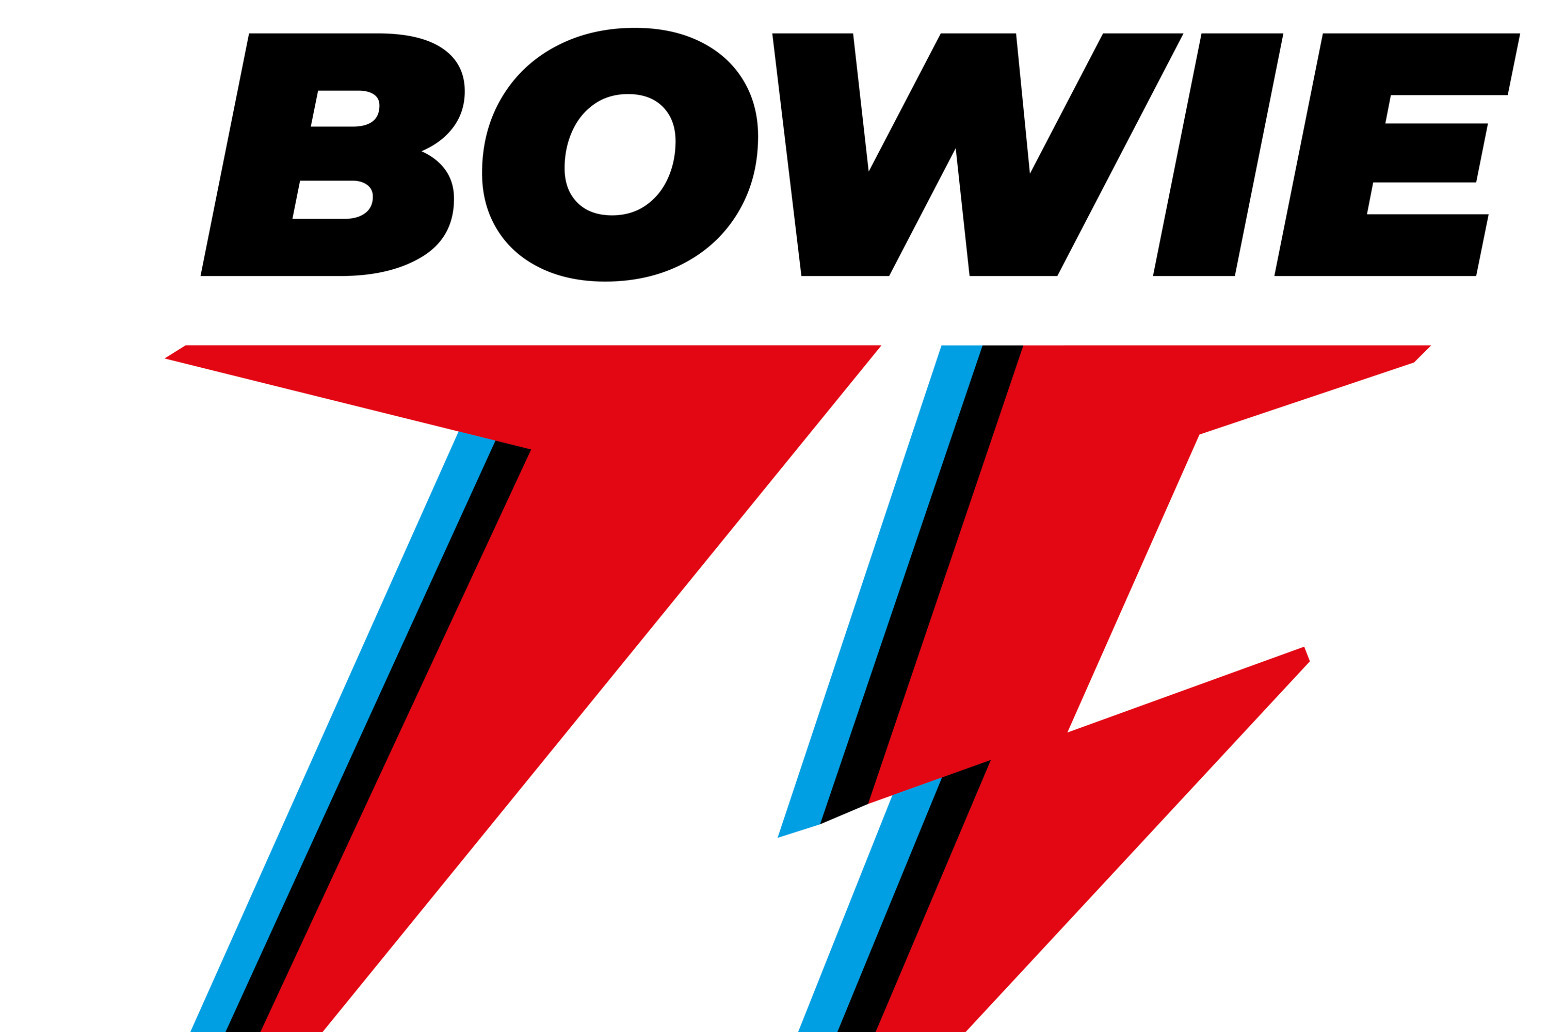 Bowie pop-up shop marking 75th birthday to open in London